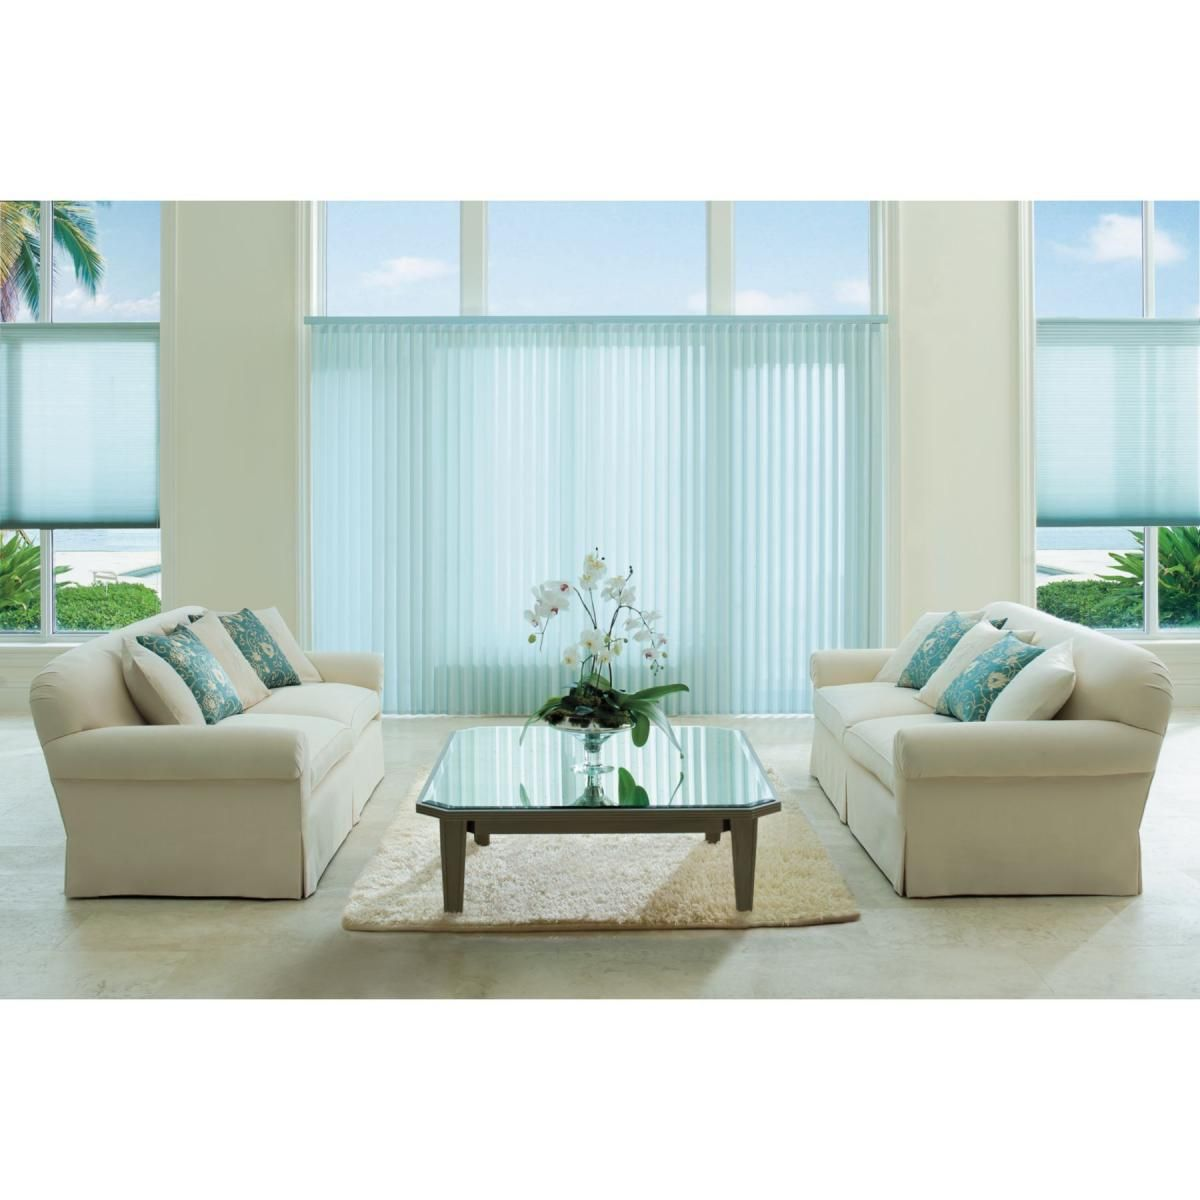 blinds roman va simple blackout real unbelievable levolor for mini parts shades elegant installation full hypnotizing wonderful beguiling kirsch clips delightful thrilling blind ex of awesome horizontal window valances valance accordia instructions size bedroom